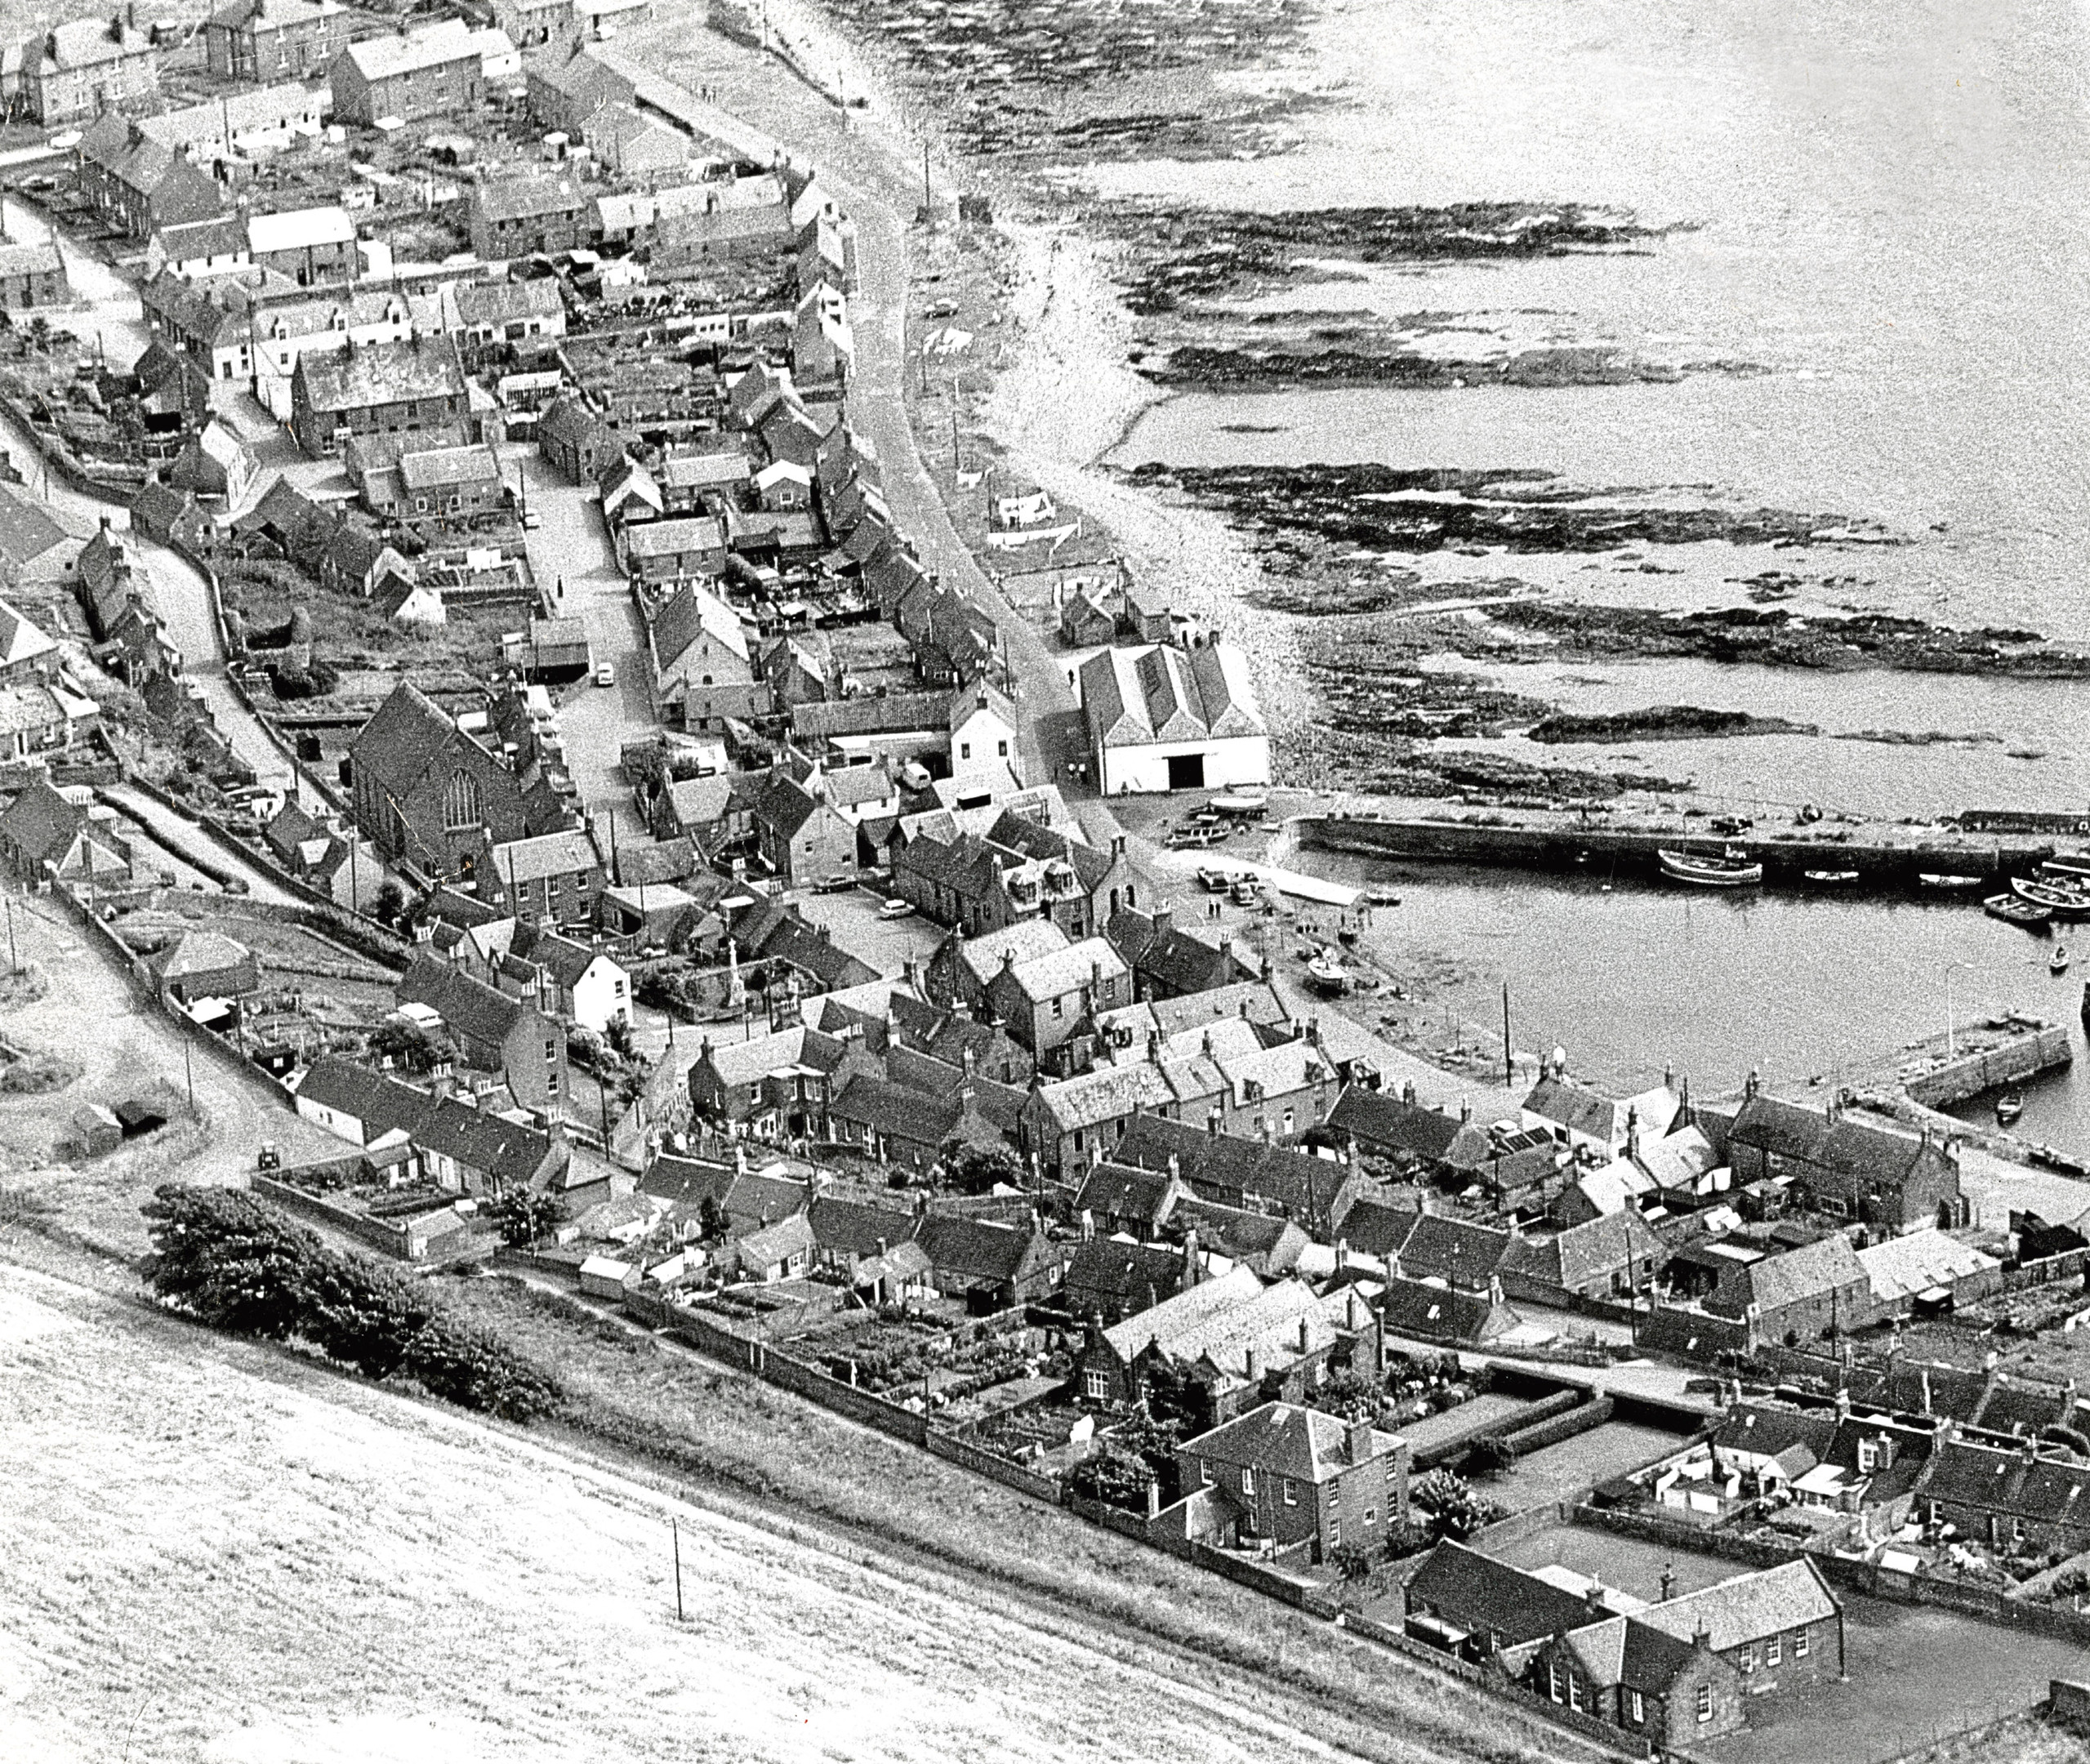 1968: An aerial view of the village of Johnshaven.